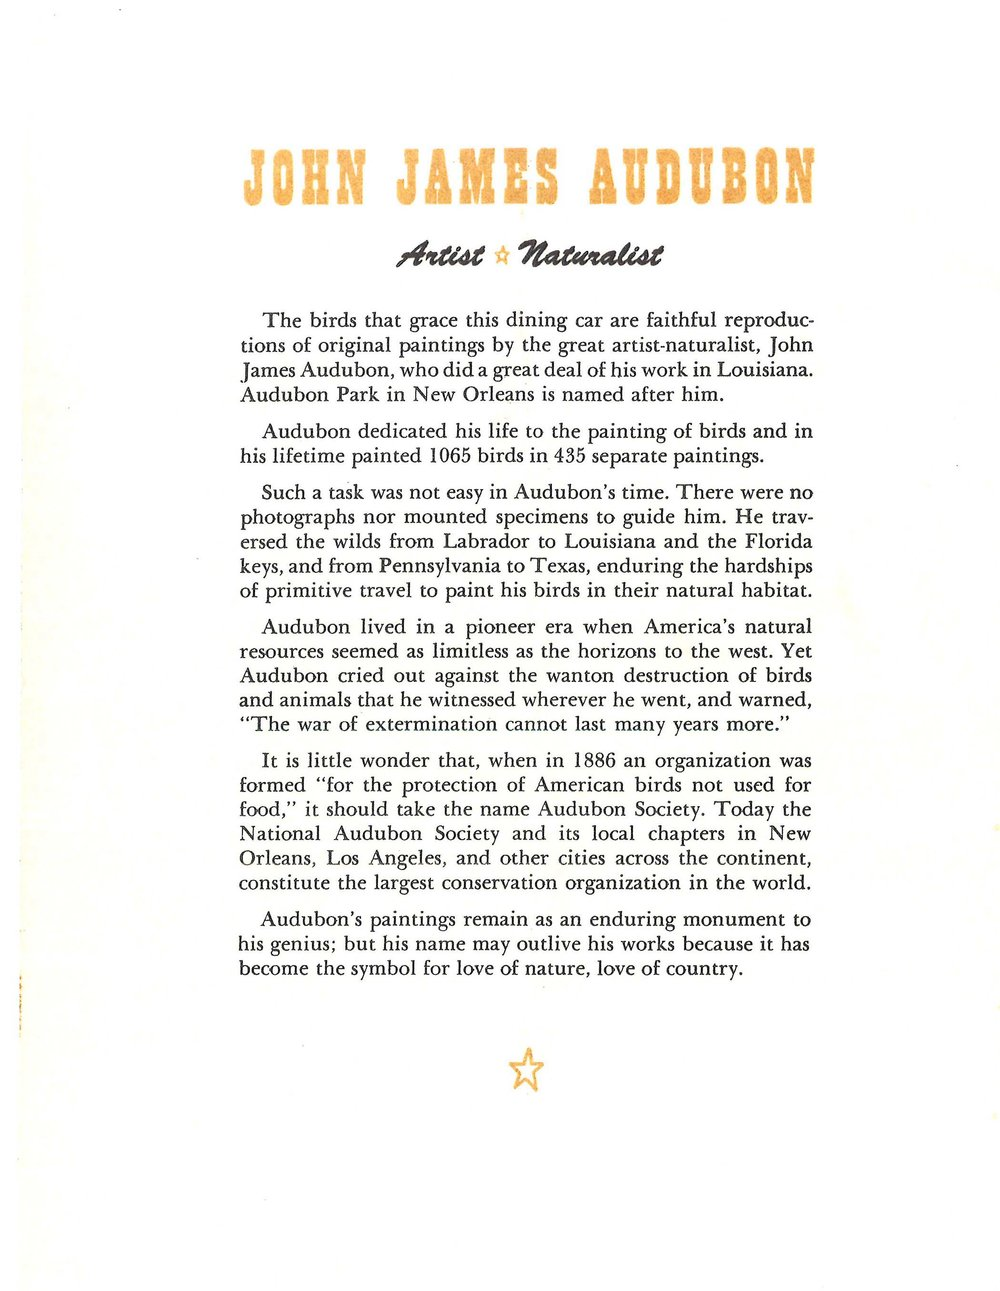 SP+John+James+Audubon+Dinner+Menu+3-65 3.jpg